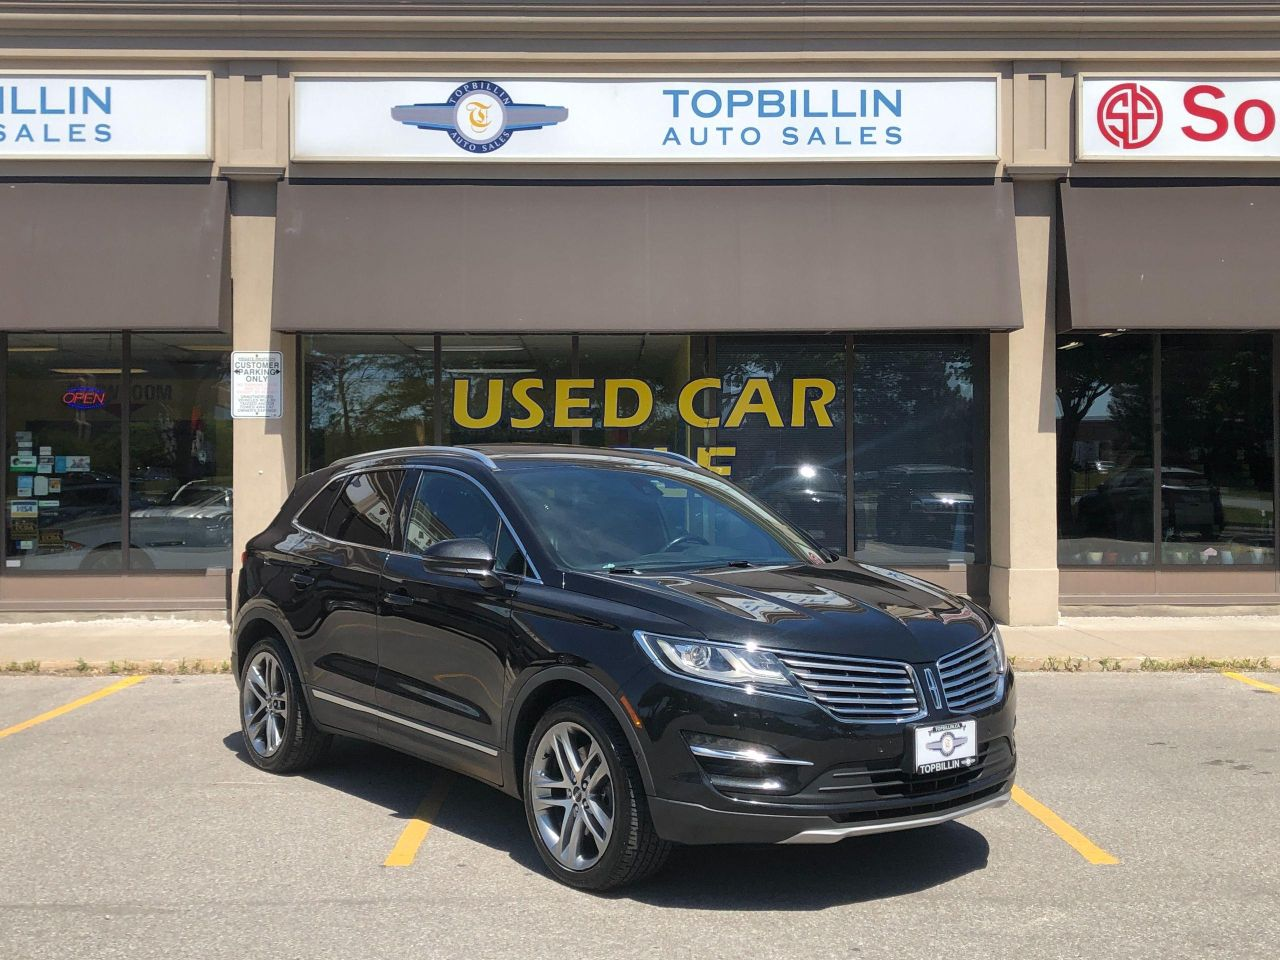 2015 Lincoln MKC Reverse 2.3 Eco, Fully Loaded